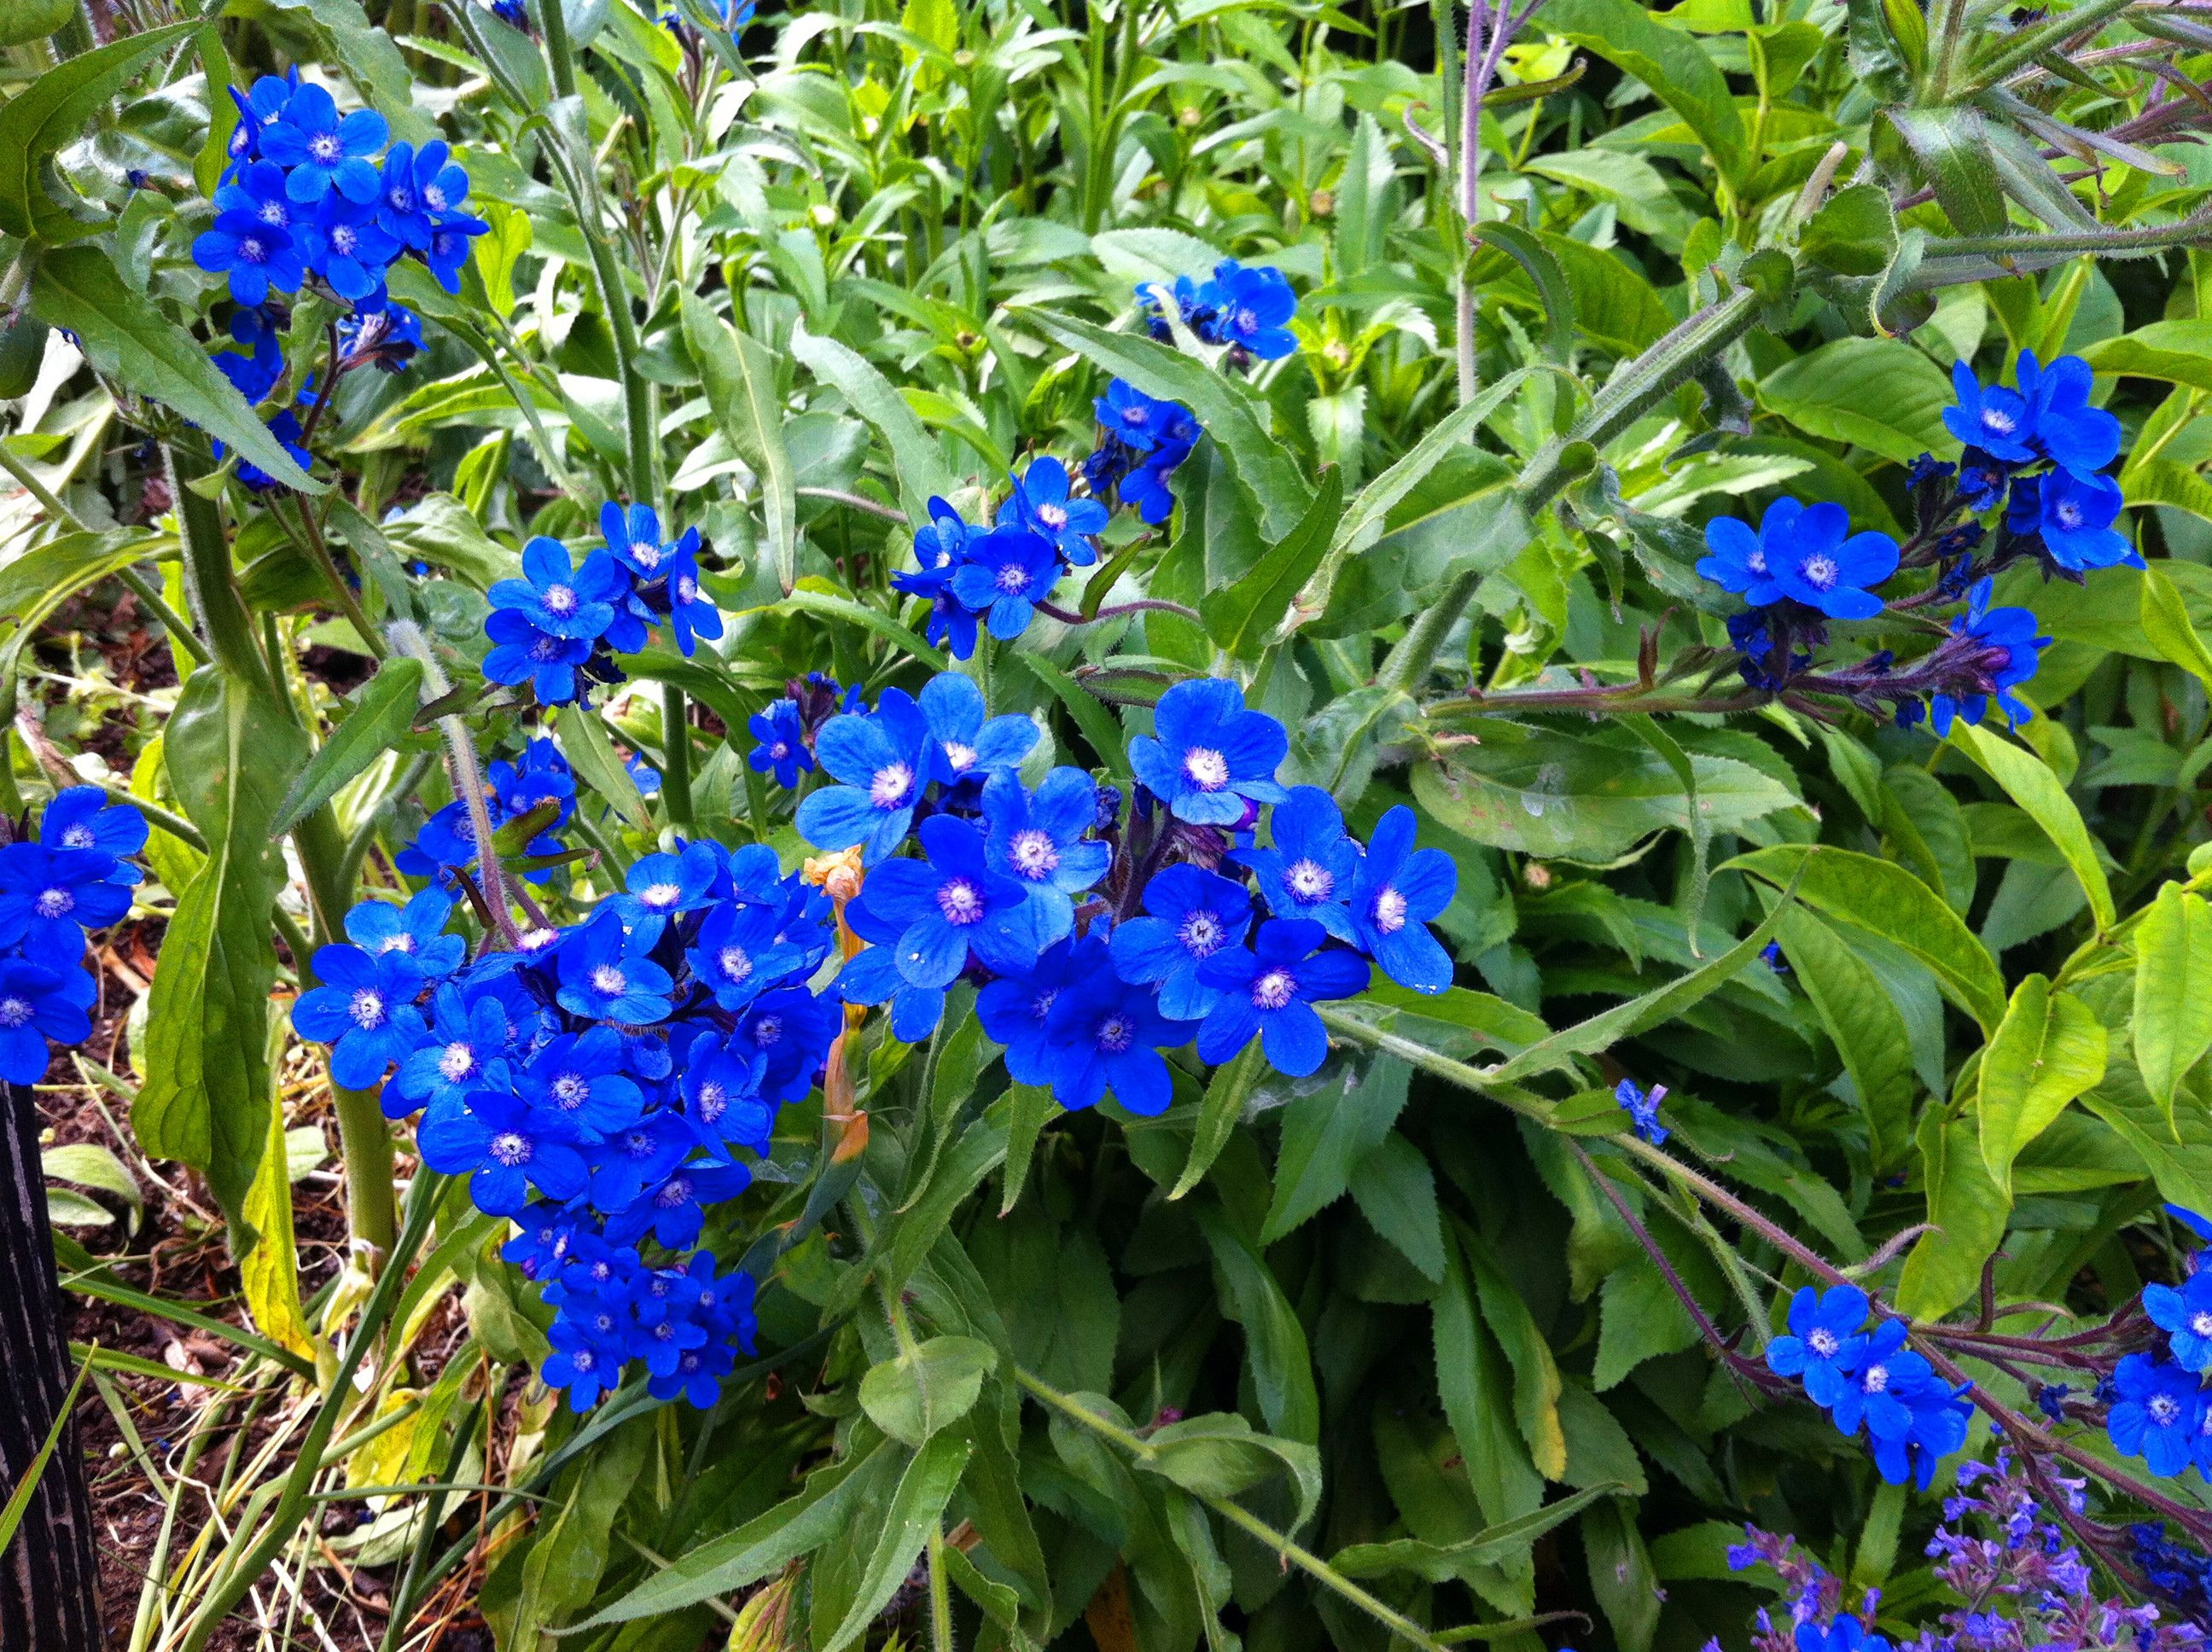 Perennial plants with blue flowers credainatcon anchusa azurea plants perennials and herbaceous lithodora evergreen perennial with electric blue flowers izmirmasajfo